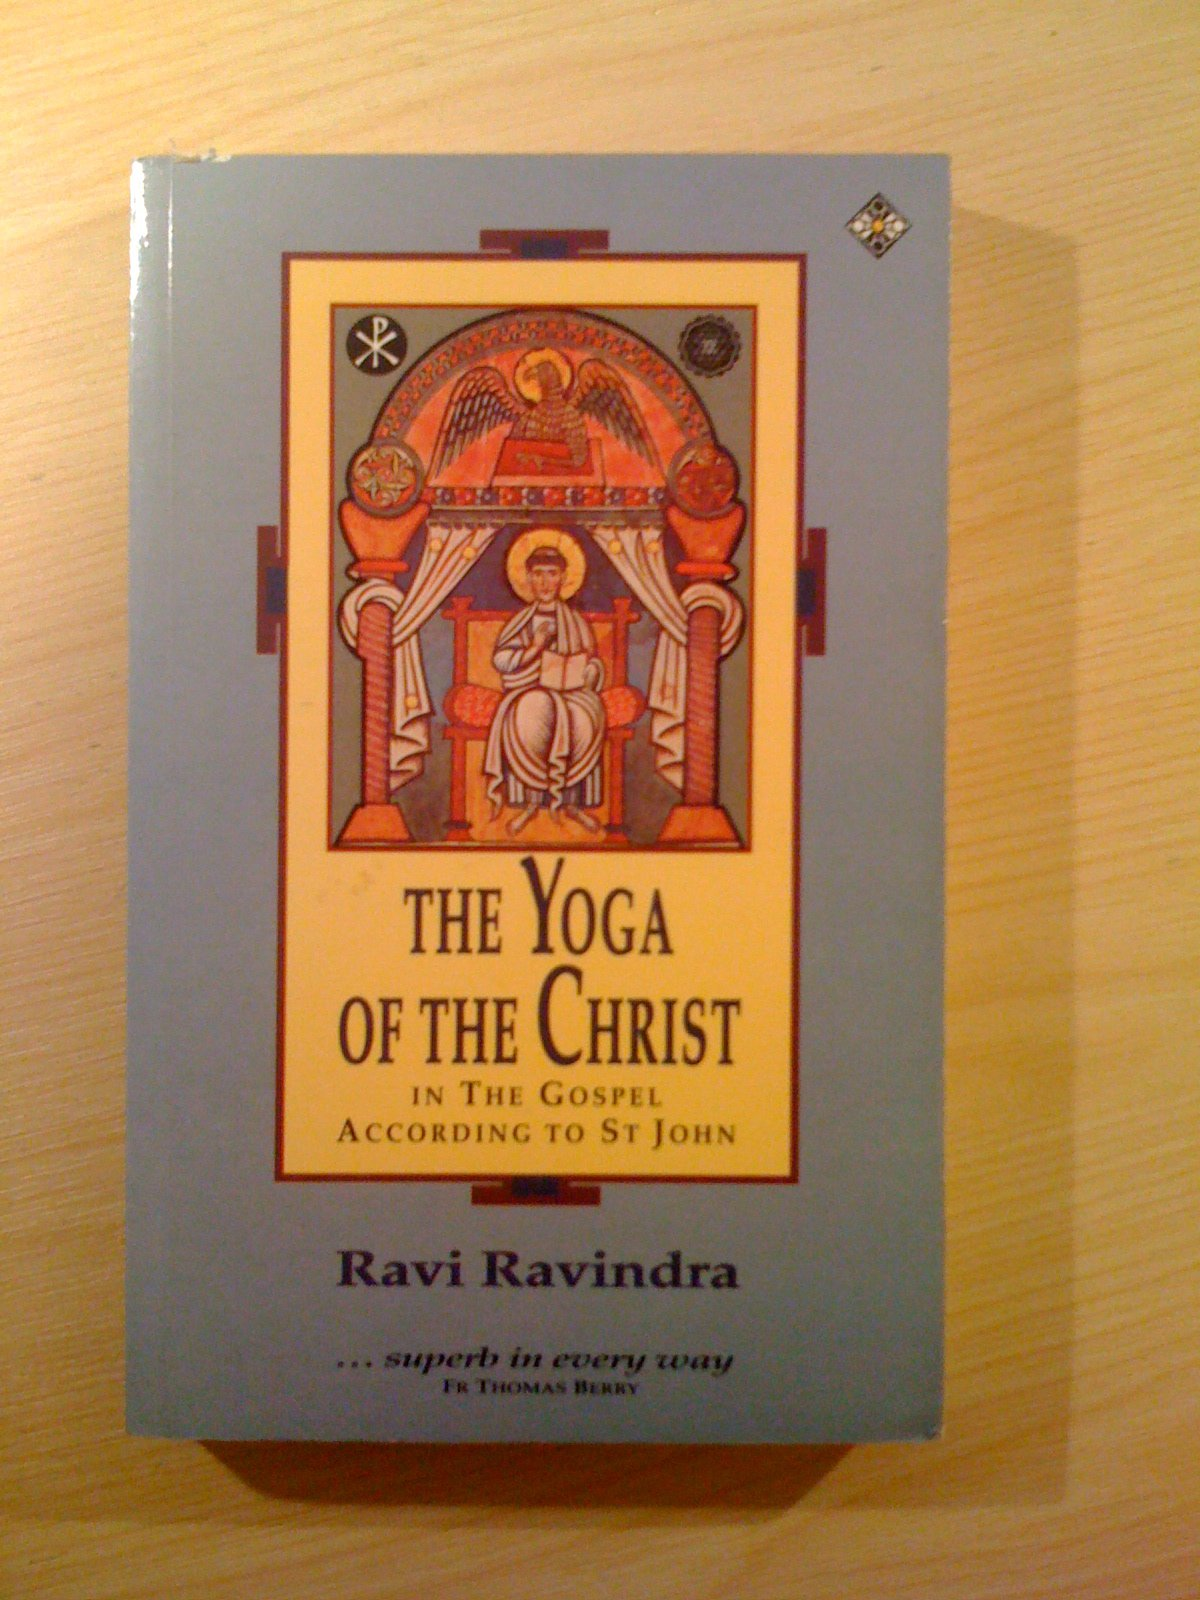 Buy The Yoga of the Christ in the Gospel According to St.John Book Online  at Low Prices in India | The Yoga of the Christ in the Gospel According to  St.John ...